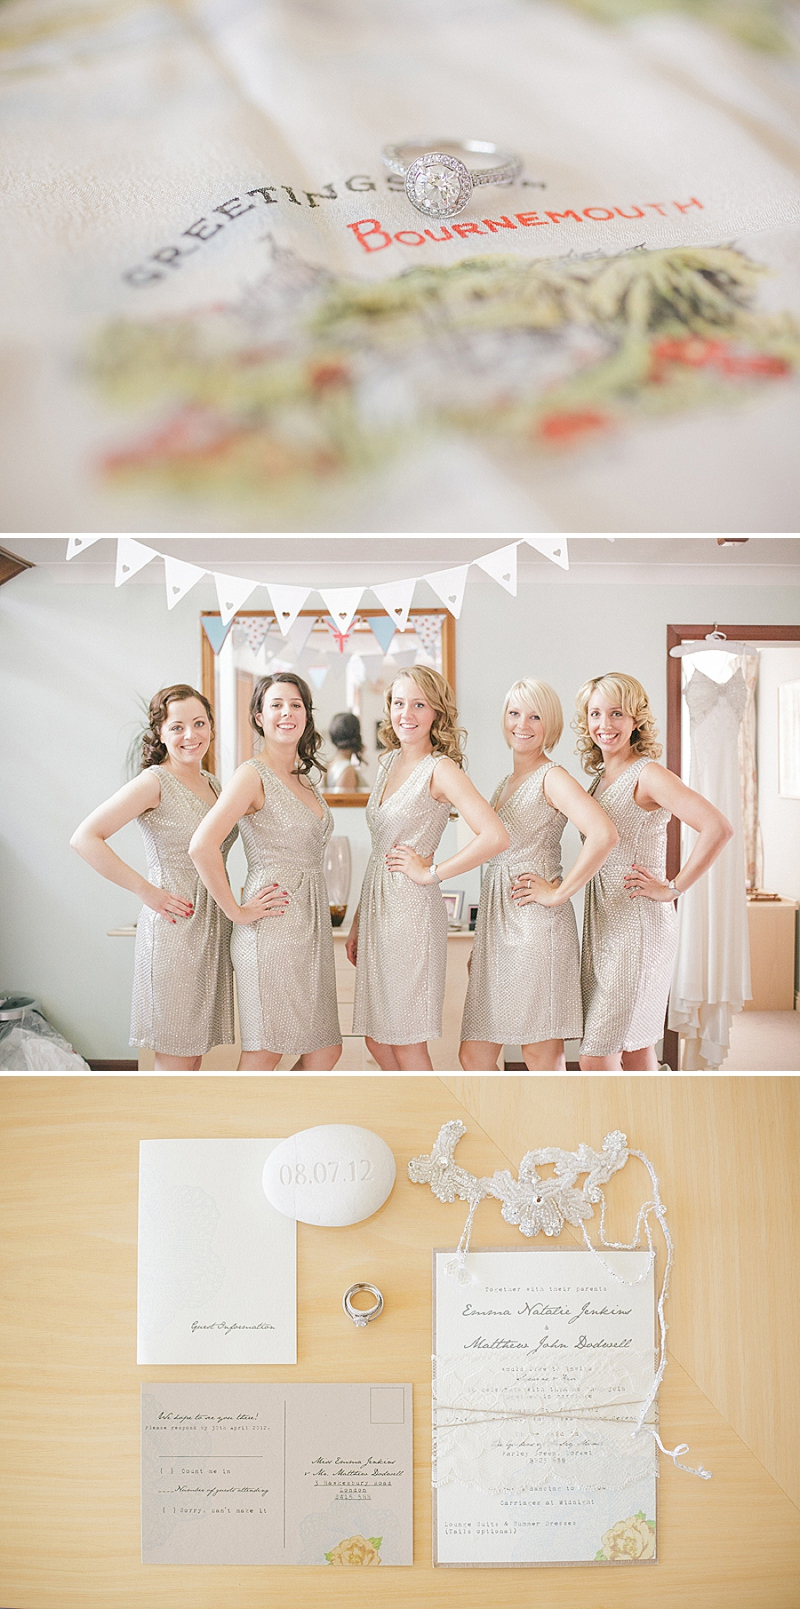 1920's vintage wedding with a Ritva Westenius gatsby dress at Parley Manor Dorcet_0009